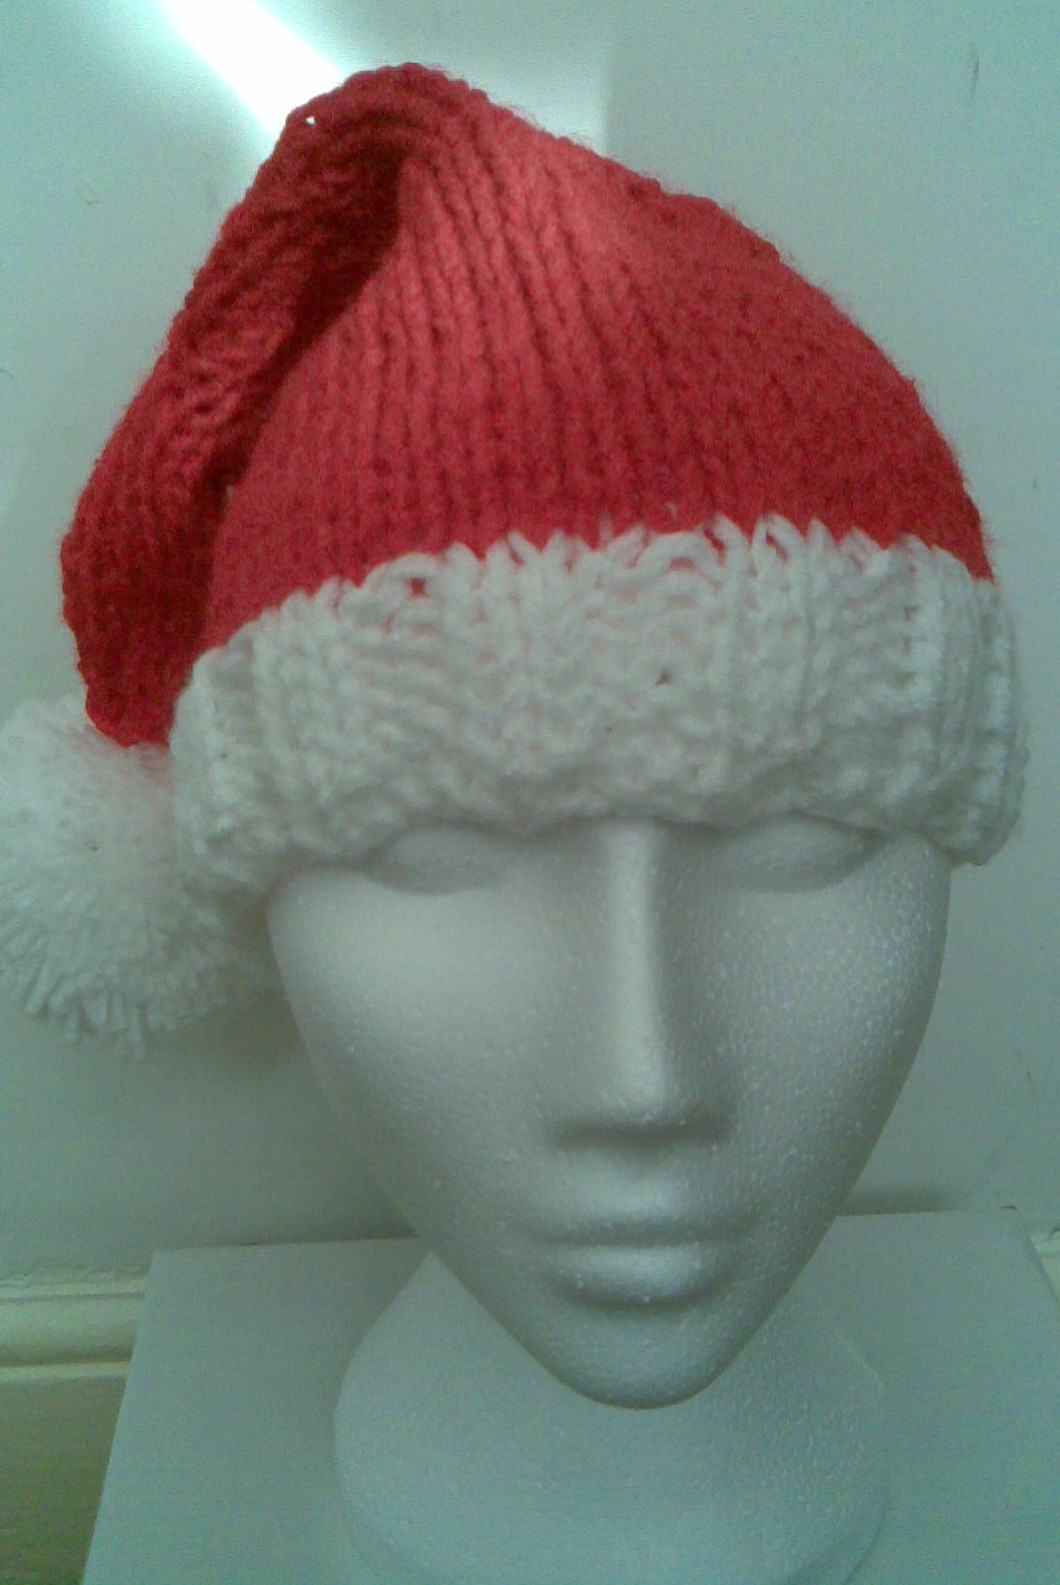 Unique Musings Of A Knit A Holic From Wales Knitting Pattern Santa Hat Pattern Of Awesome This Chunky Knit Santa Hat Will Be the Coziest Thing You Santa Hat Pattern